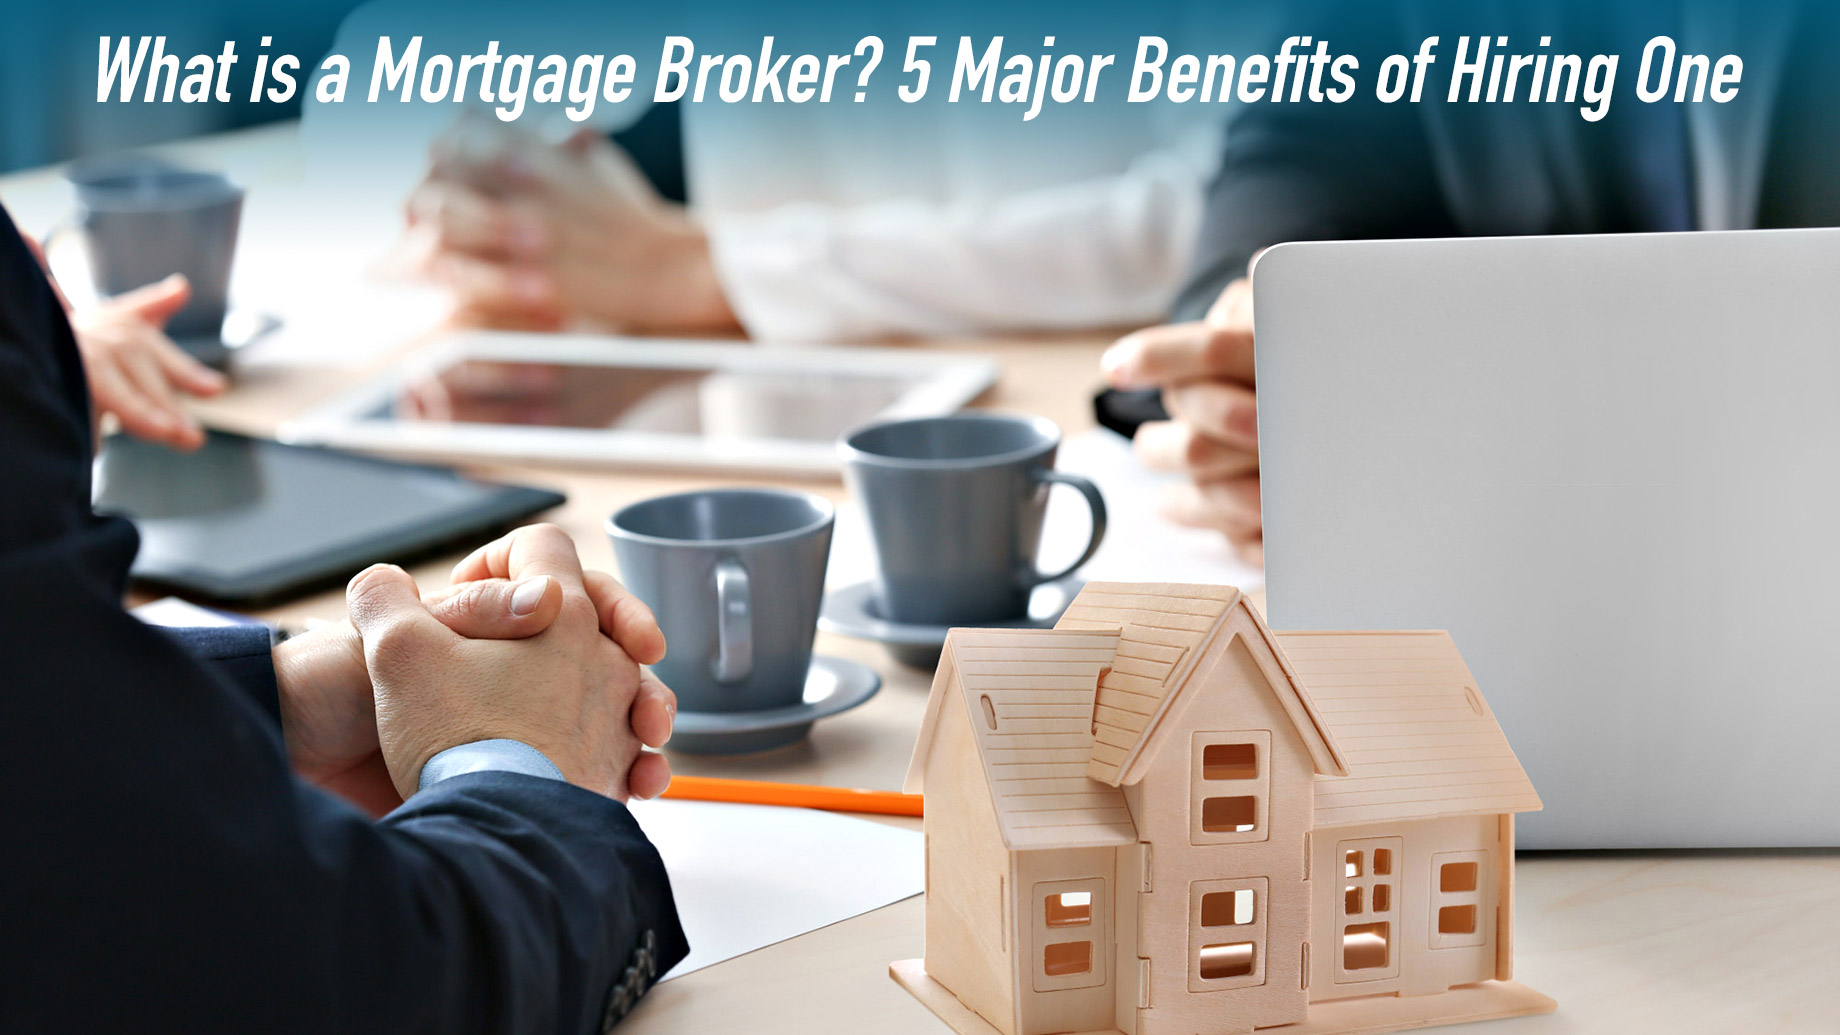 What is a Mortgage Broker? 5 Major Benefits of Hiring One